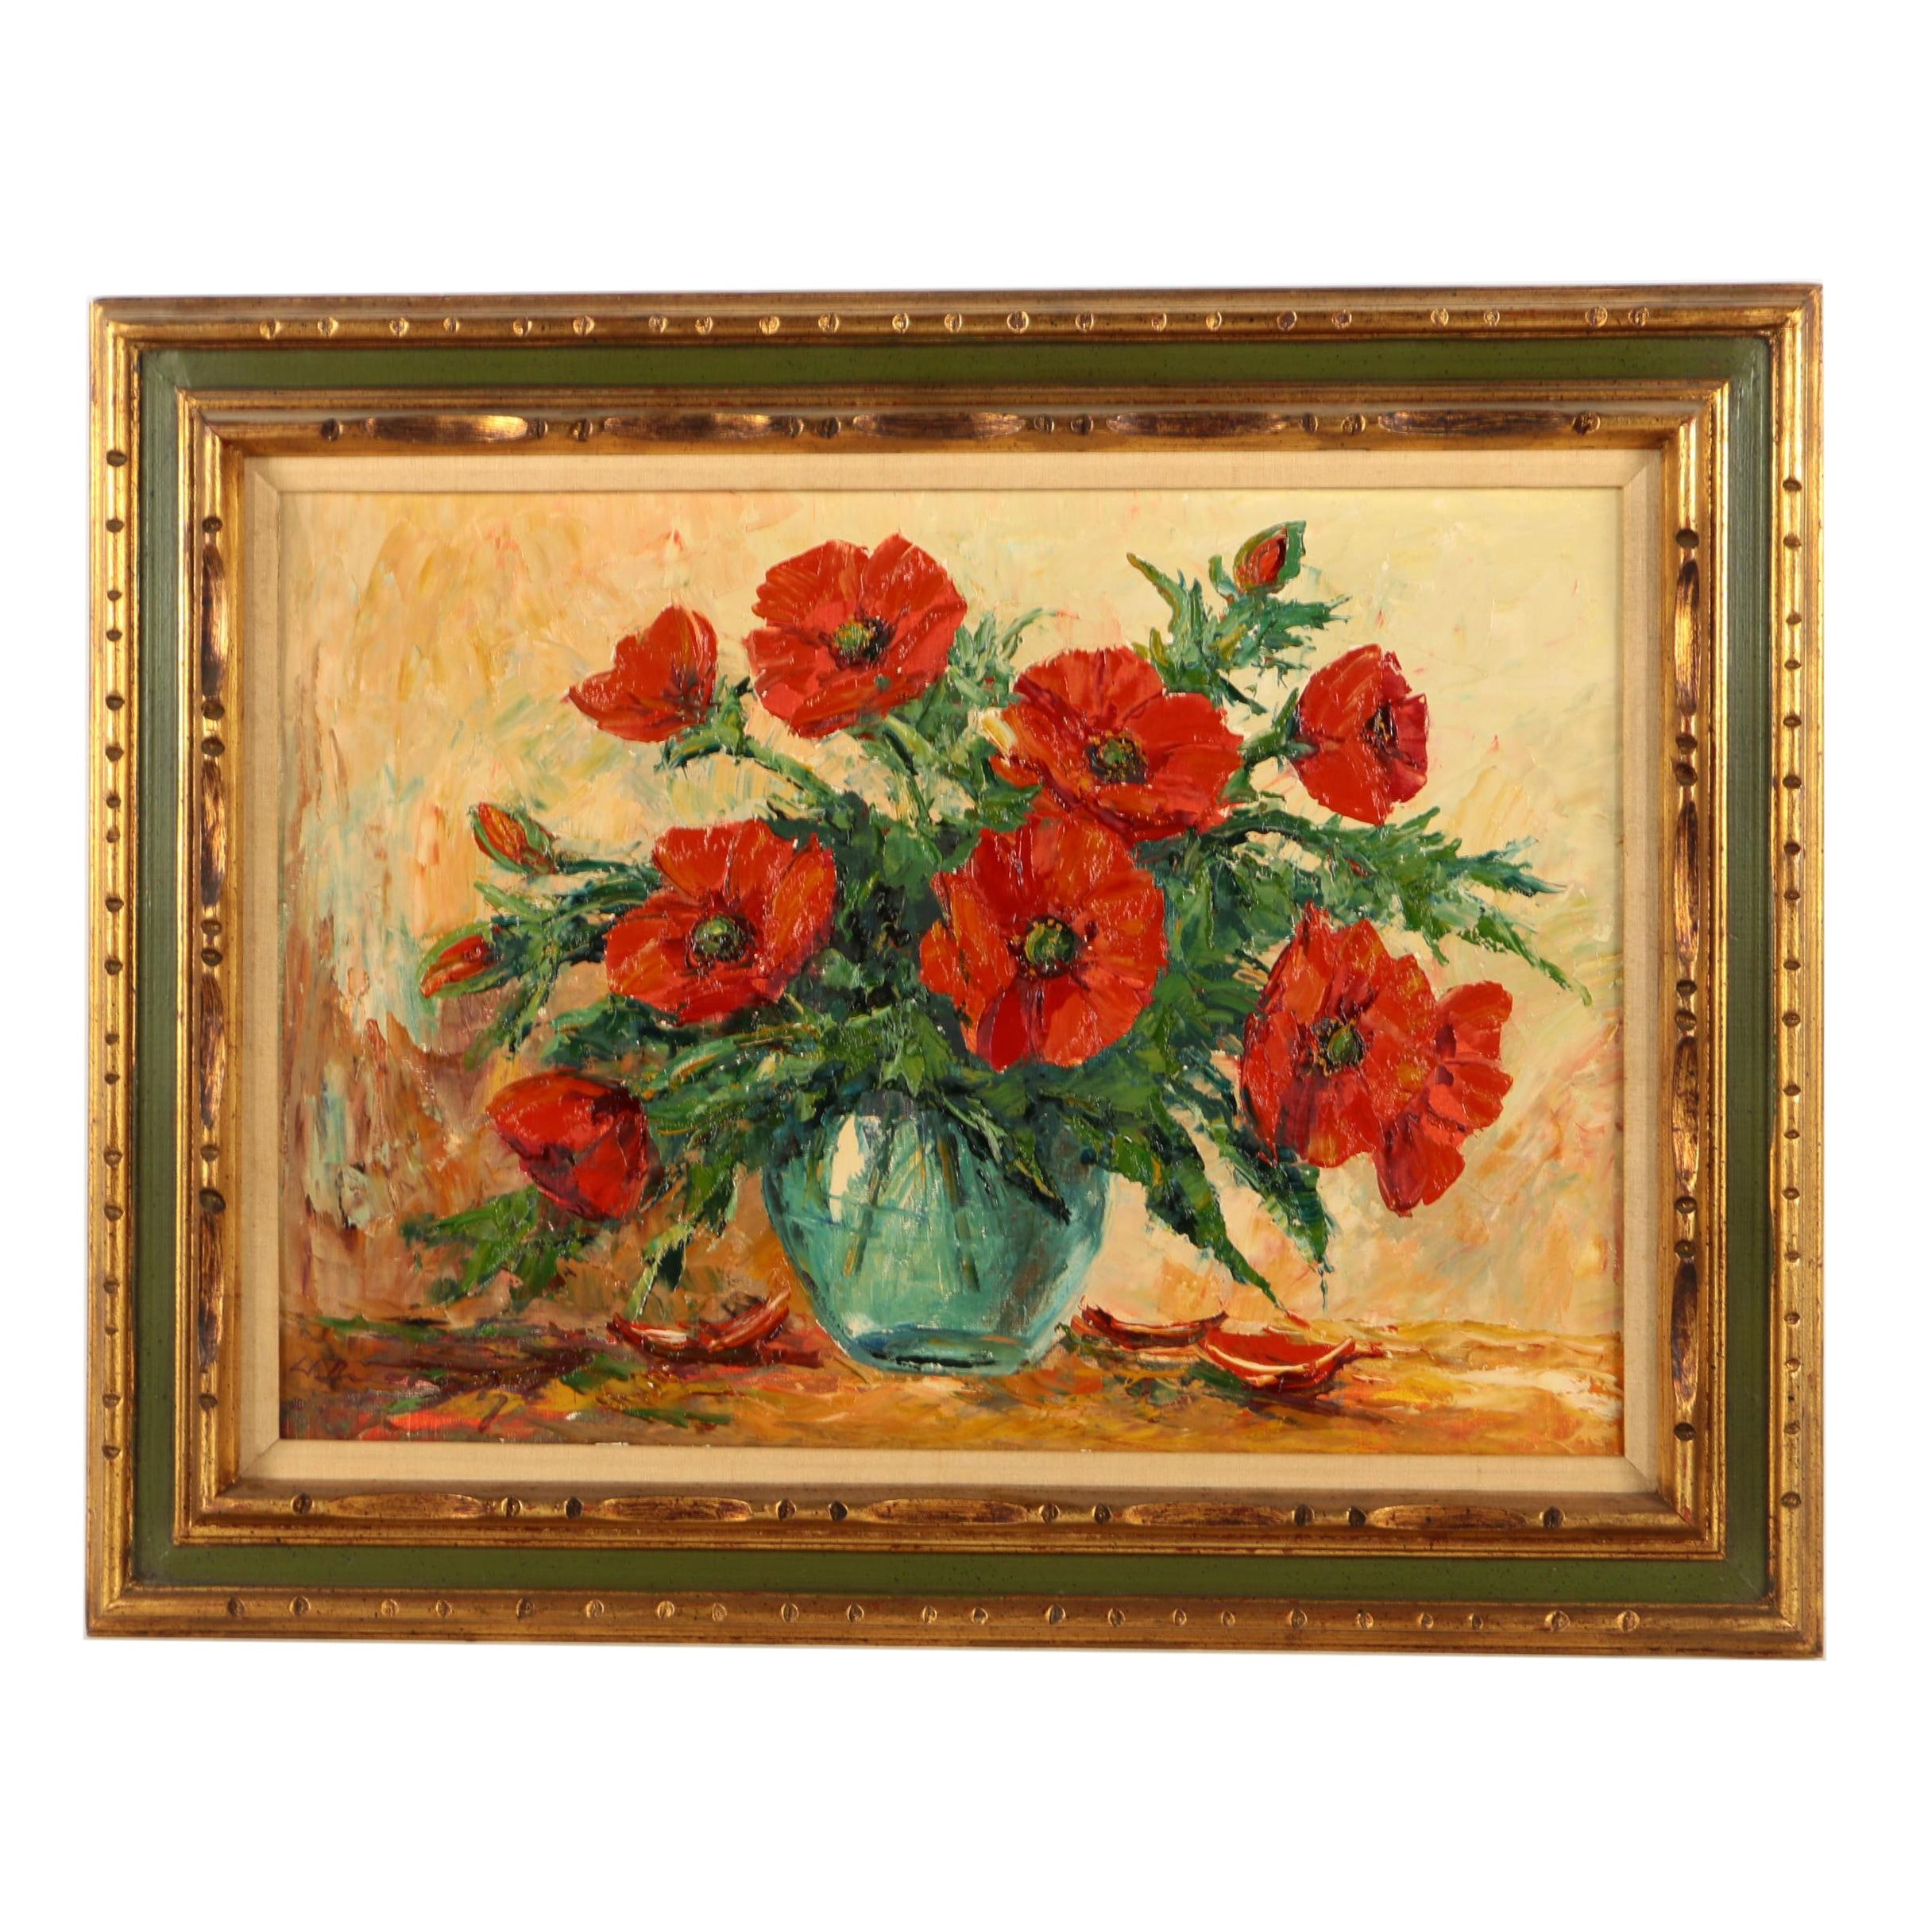 Oil Painting on Canvas of a Floral Still Life of Poppies